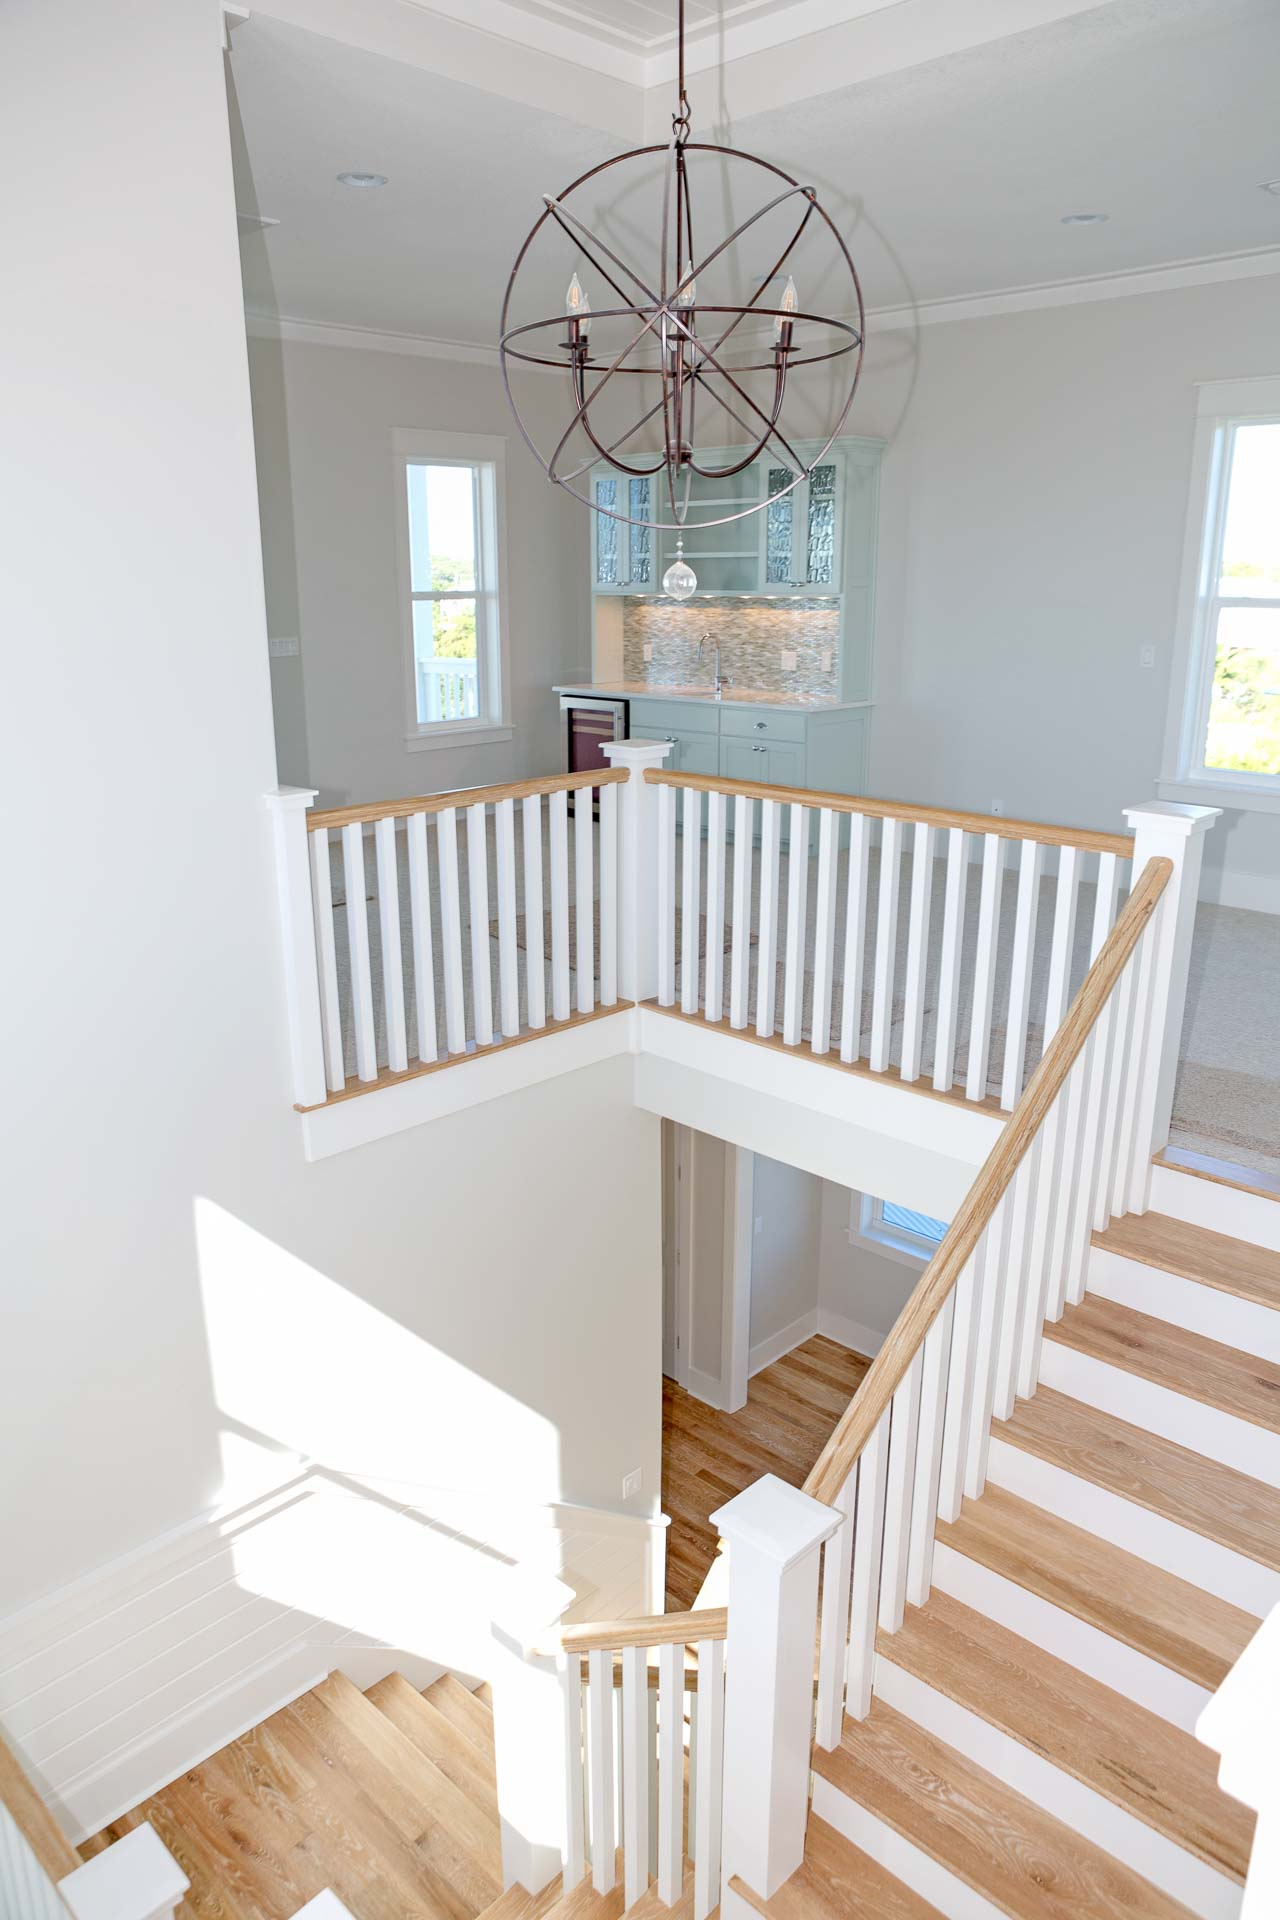 Stair case with hard wood floors and globe light fixure inside newly built custom home in Old Florida Beach on 30A.